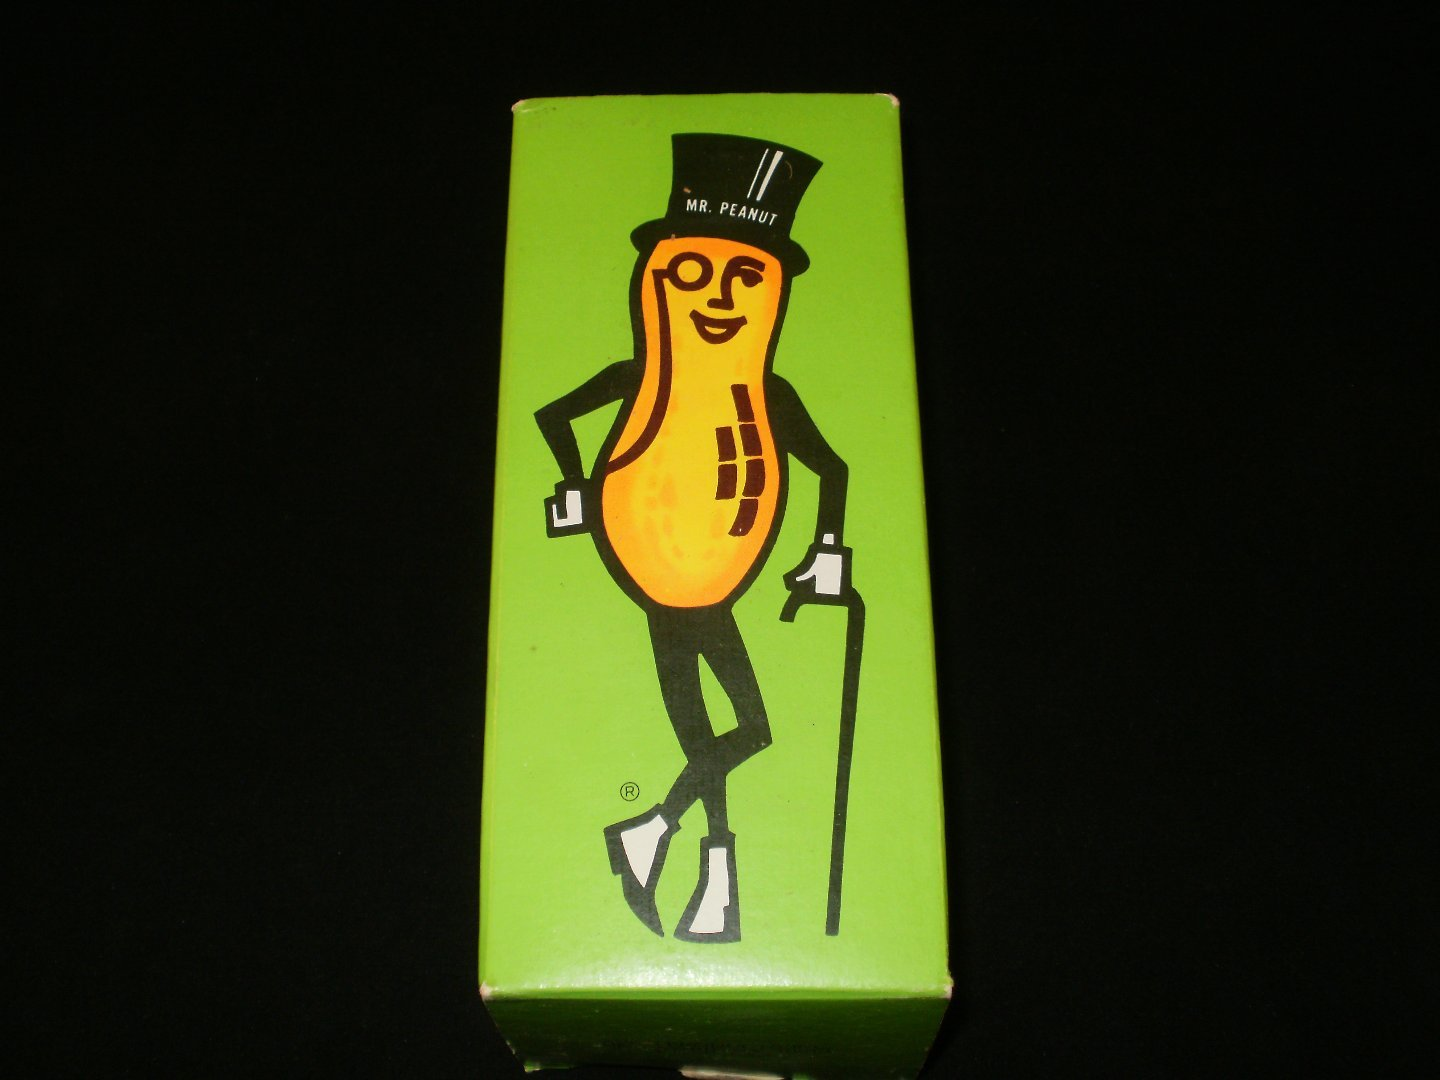 Mr. Peanut Nutty Soap Dish - Vintage Avon 1978 Collectible - Brand New